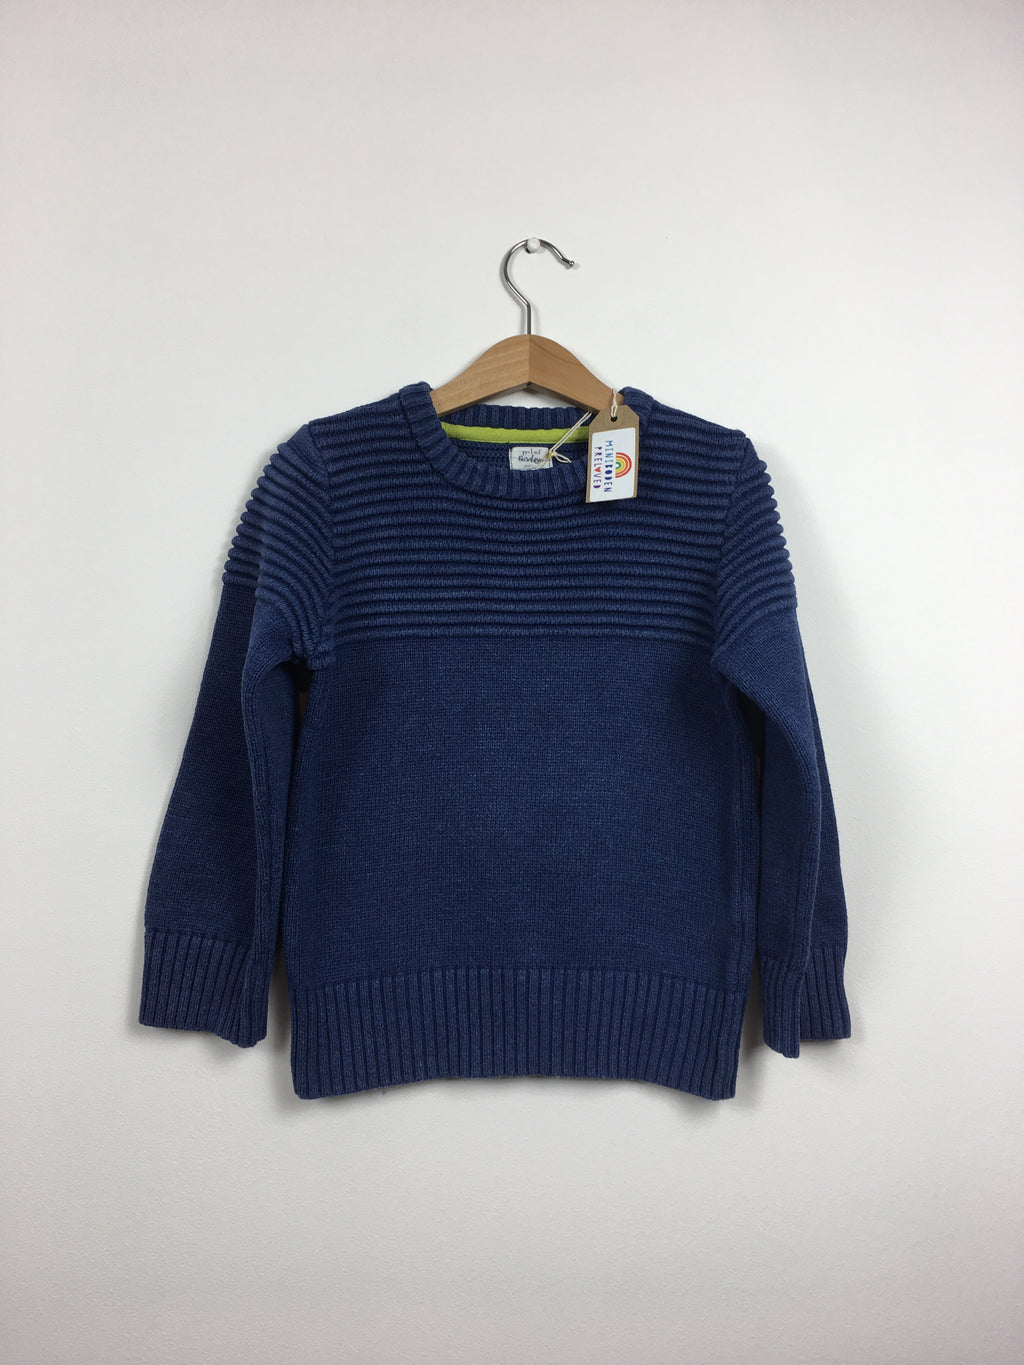 Navy Thick Cotton Jumper (Age 6-7 Years)